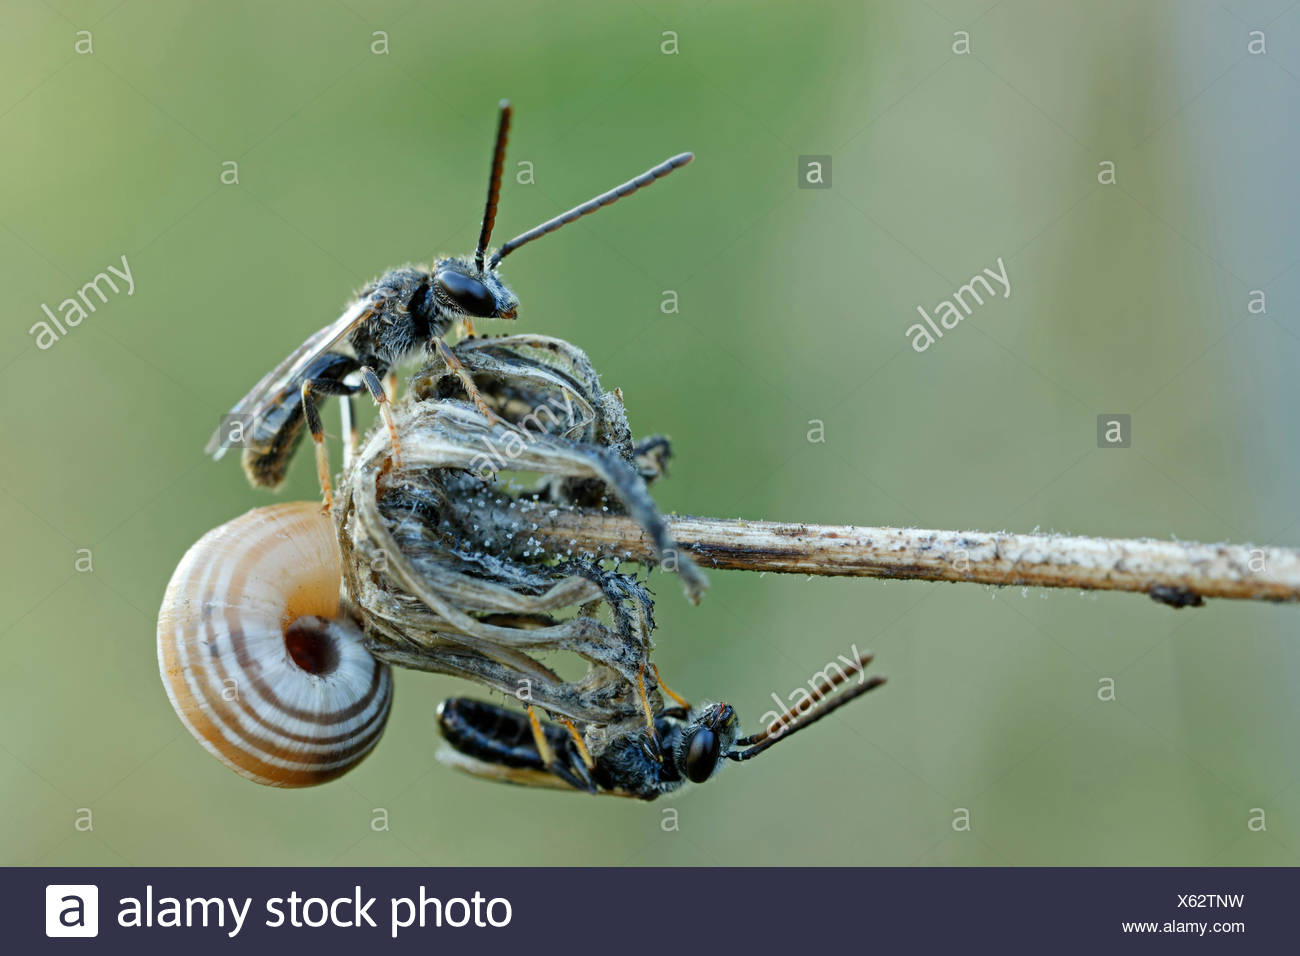 Sweat Bees or Halictid Bees (Halictus calceatus or Lasioglossum calceatum) on a wilted flower with a Snail (Helicidae), Hesse - Stock Image